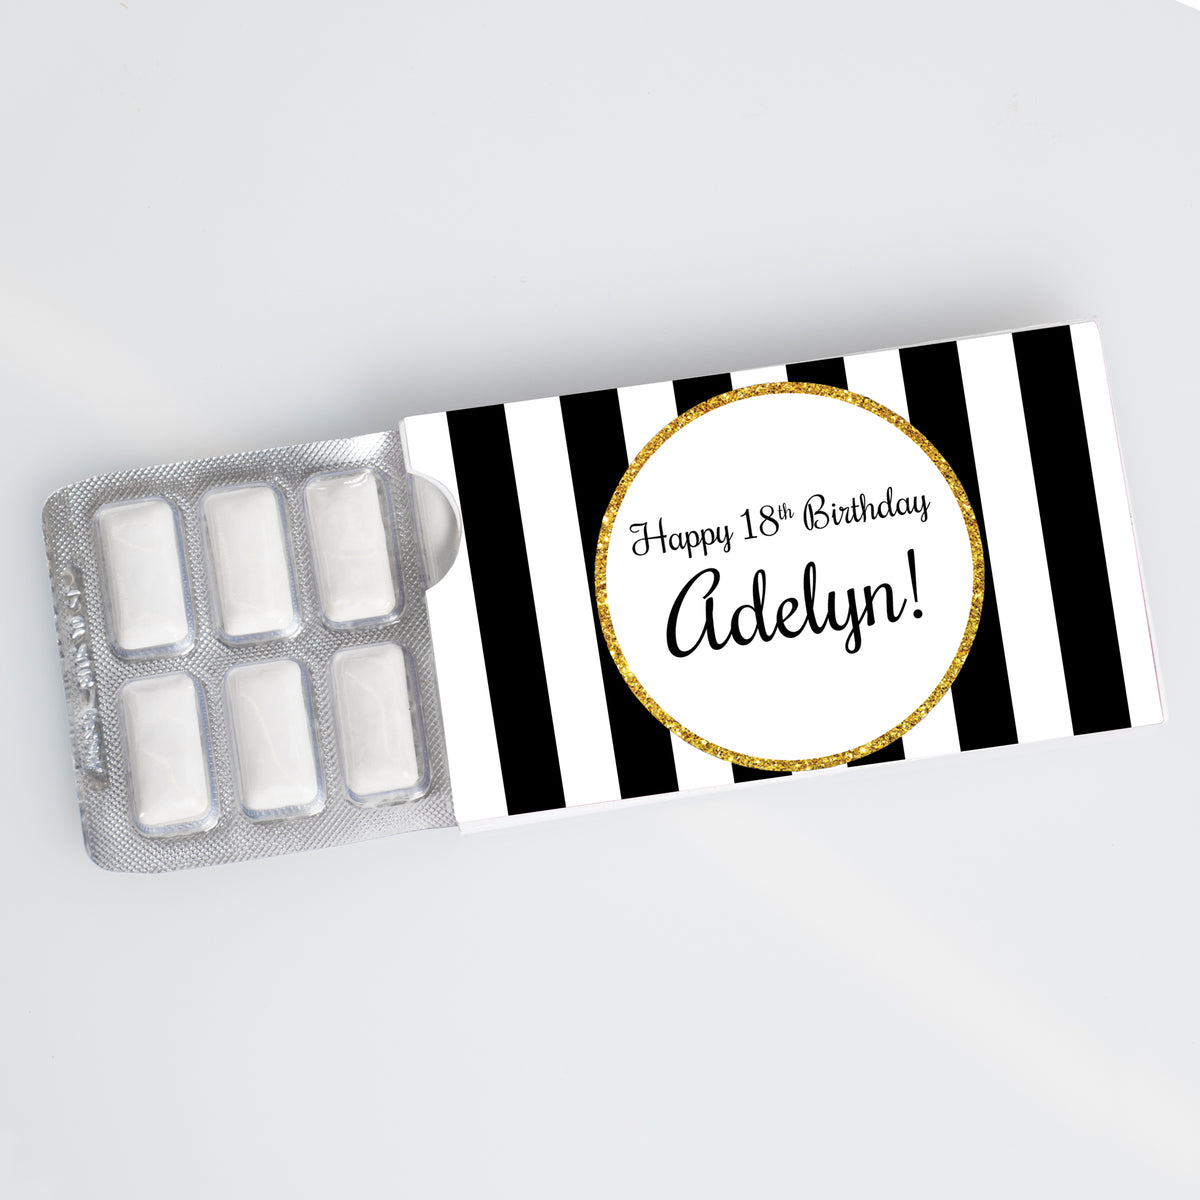 Cheers to You Gold Personalized Gum Sliders